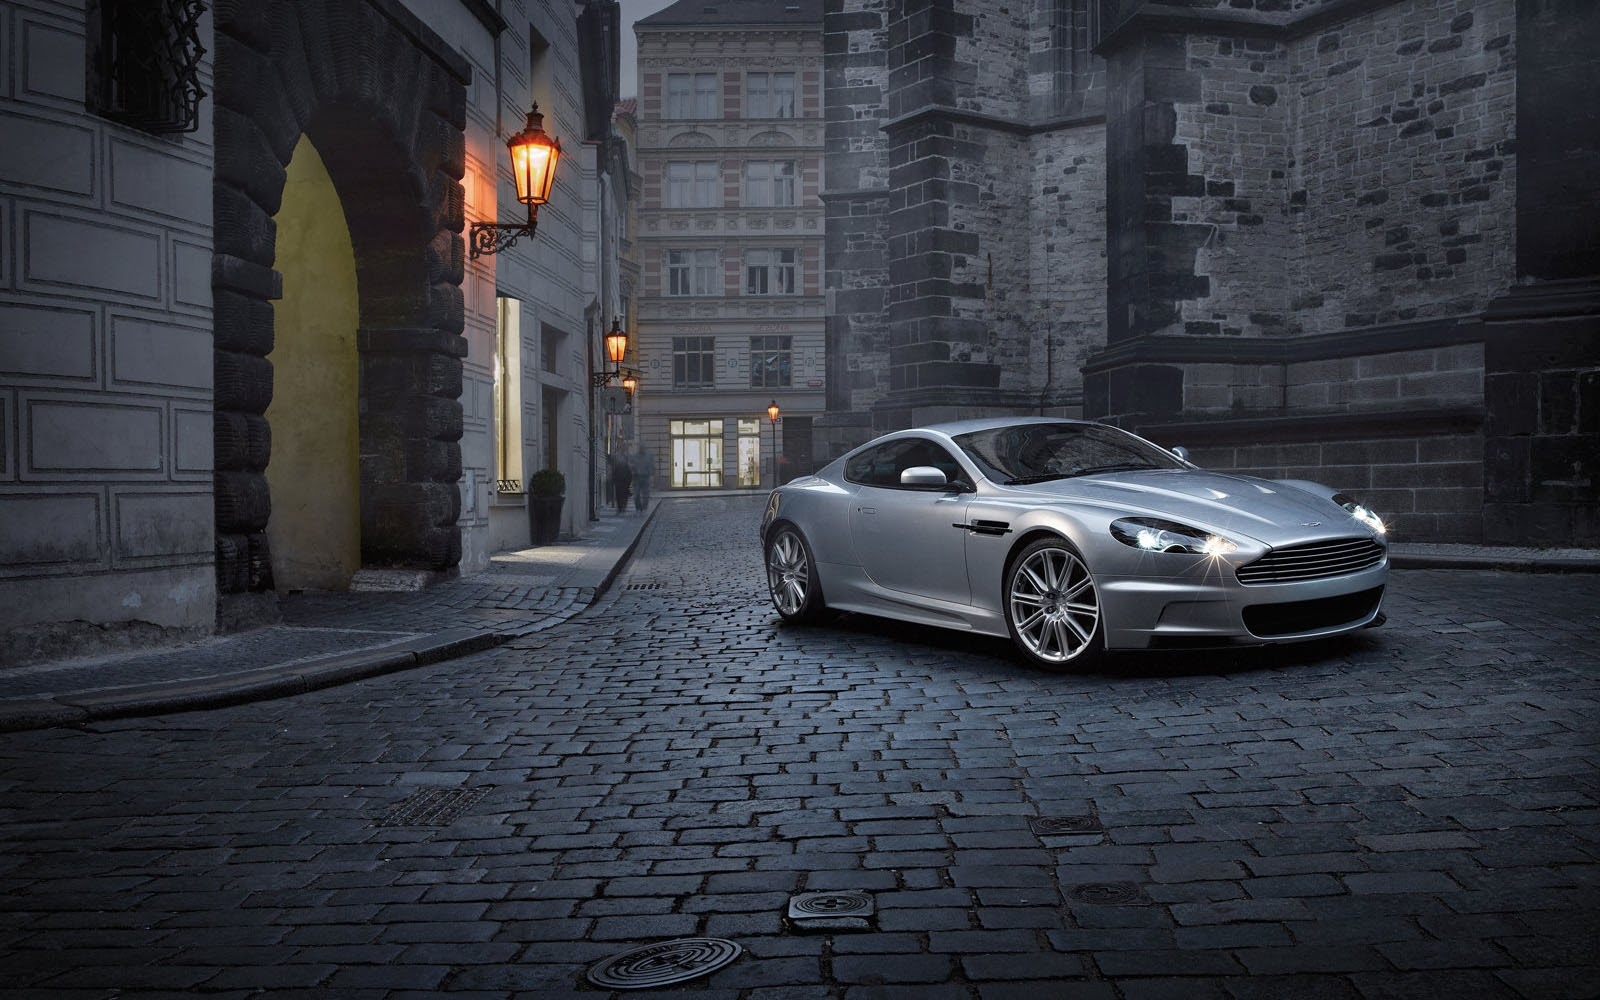 Free 3D Wallpapers Download: Aston Martin DBS Wallpapers